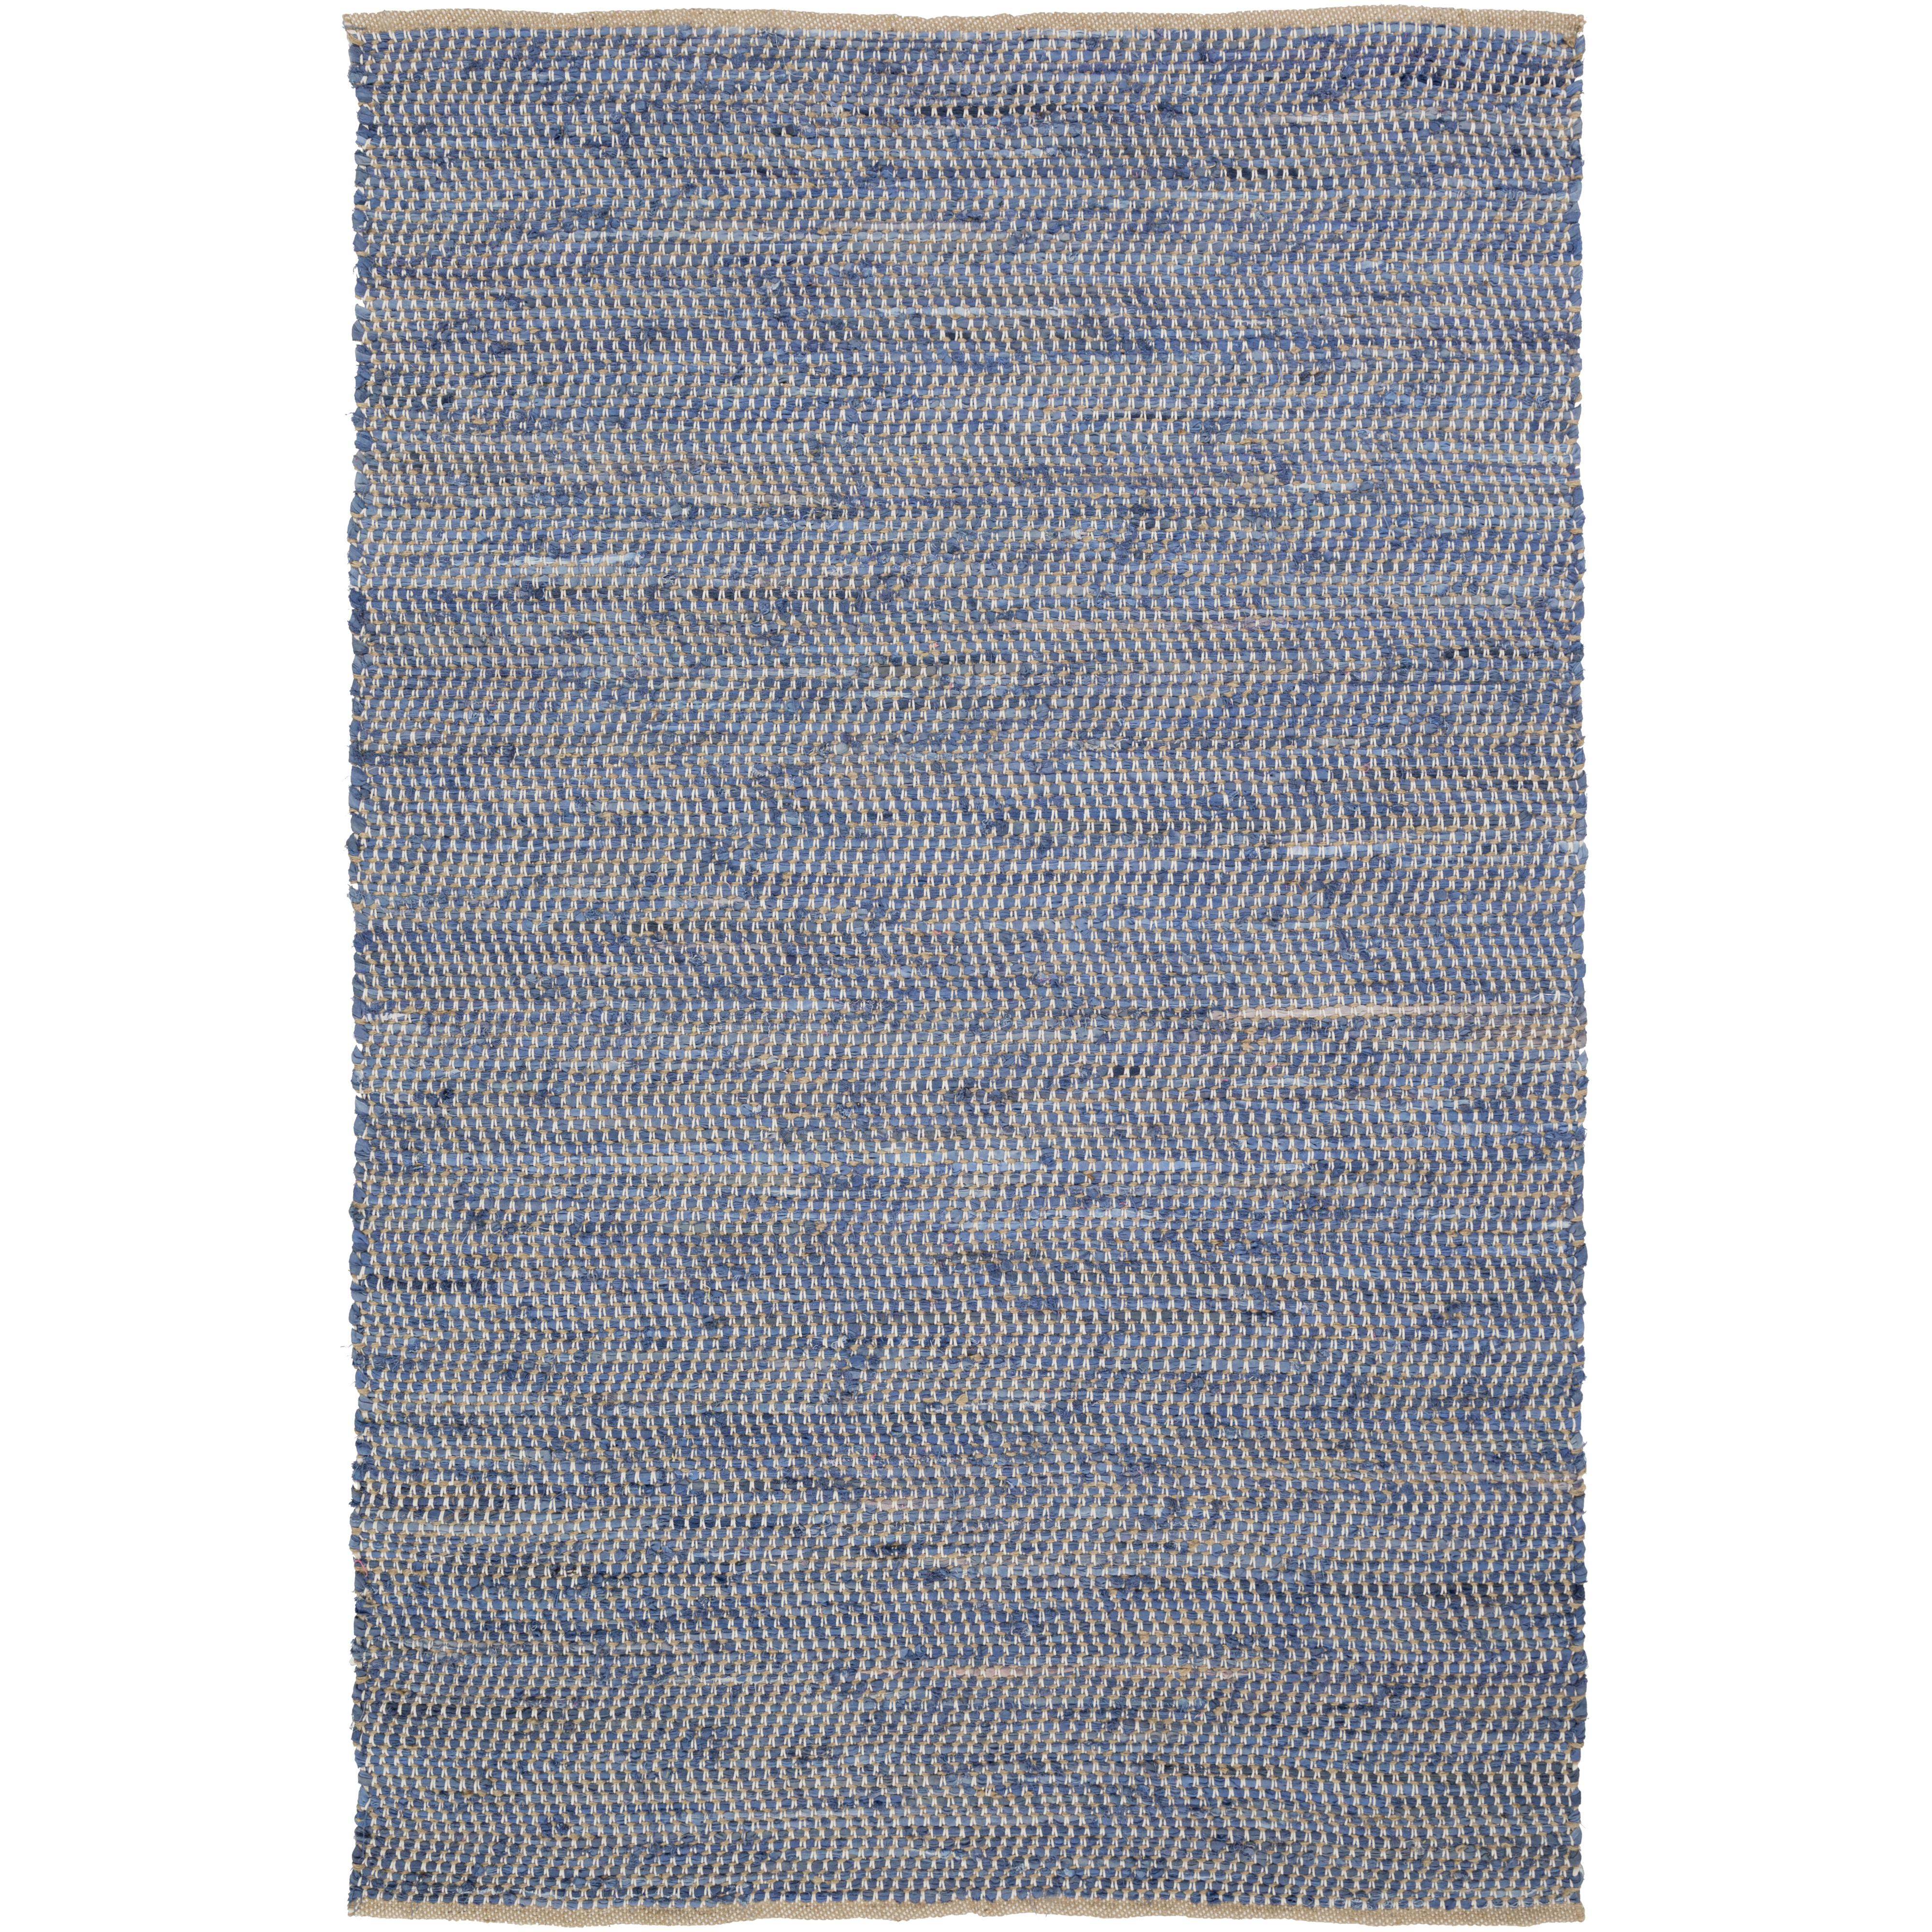 "Surya Rugs Fanore 3'6"" x 5'6"" - Item Number: FAN3002-3656"